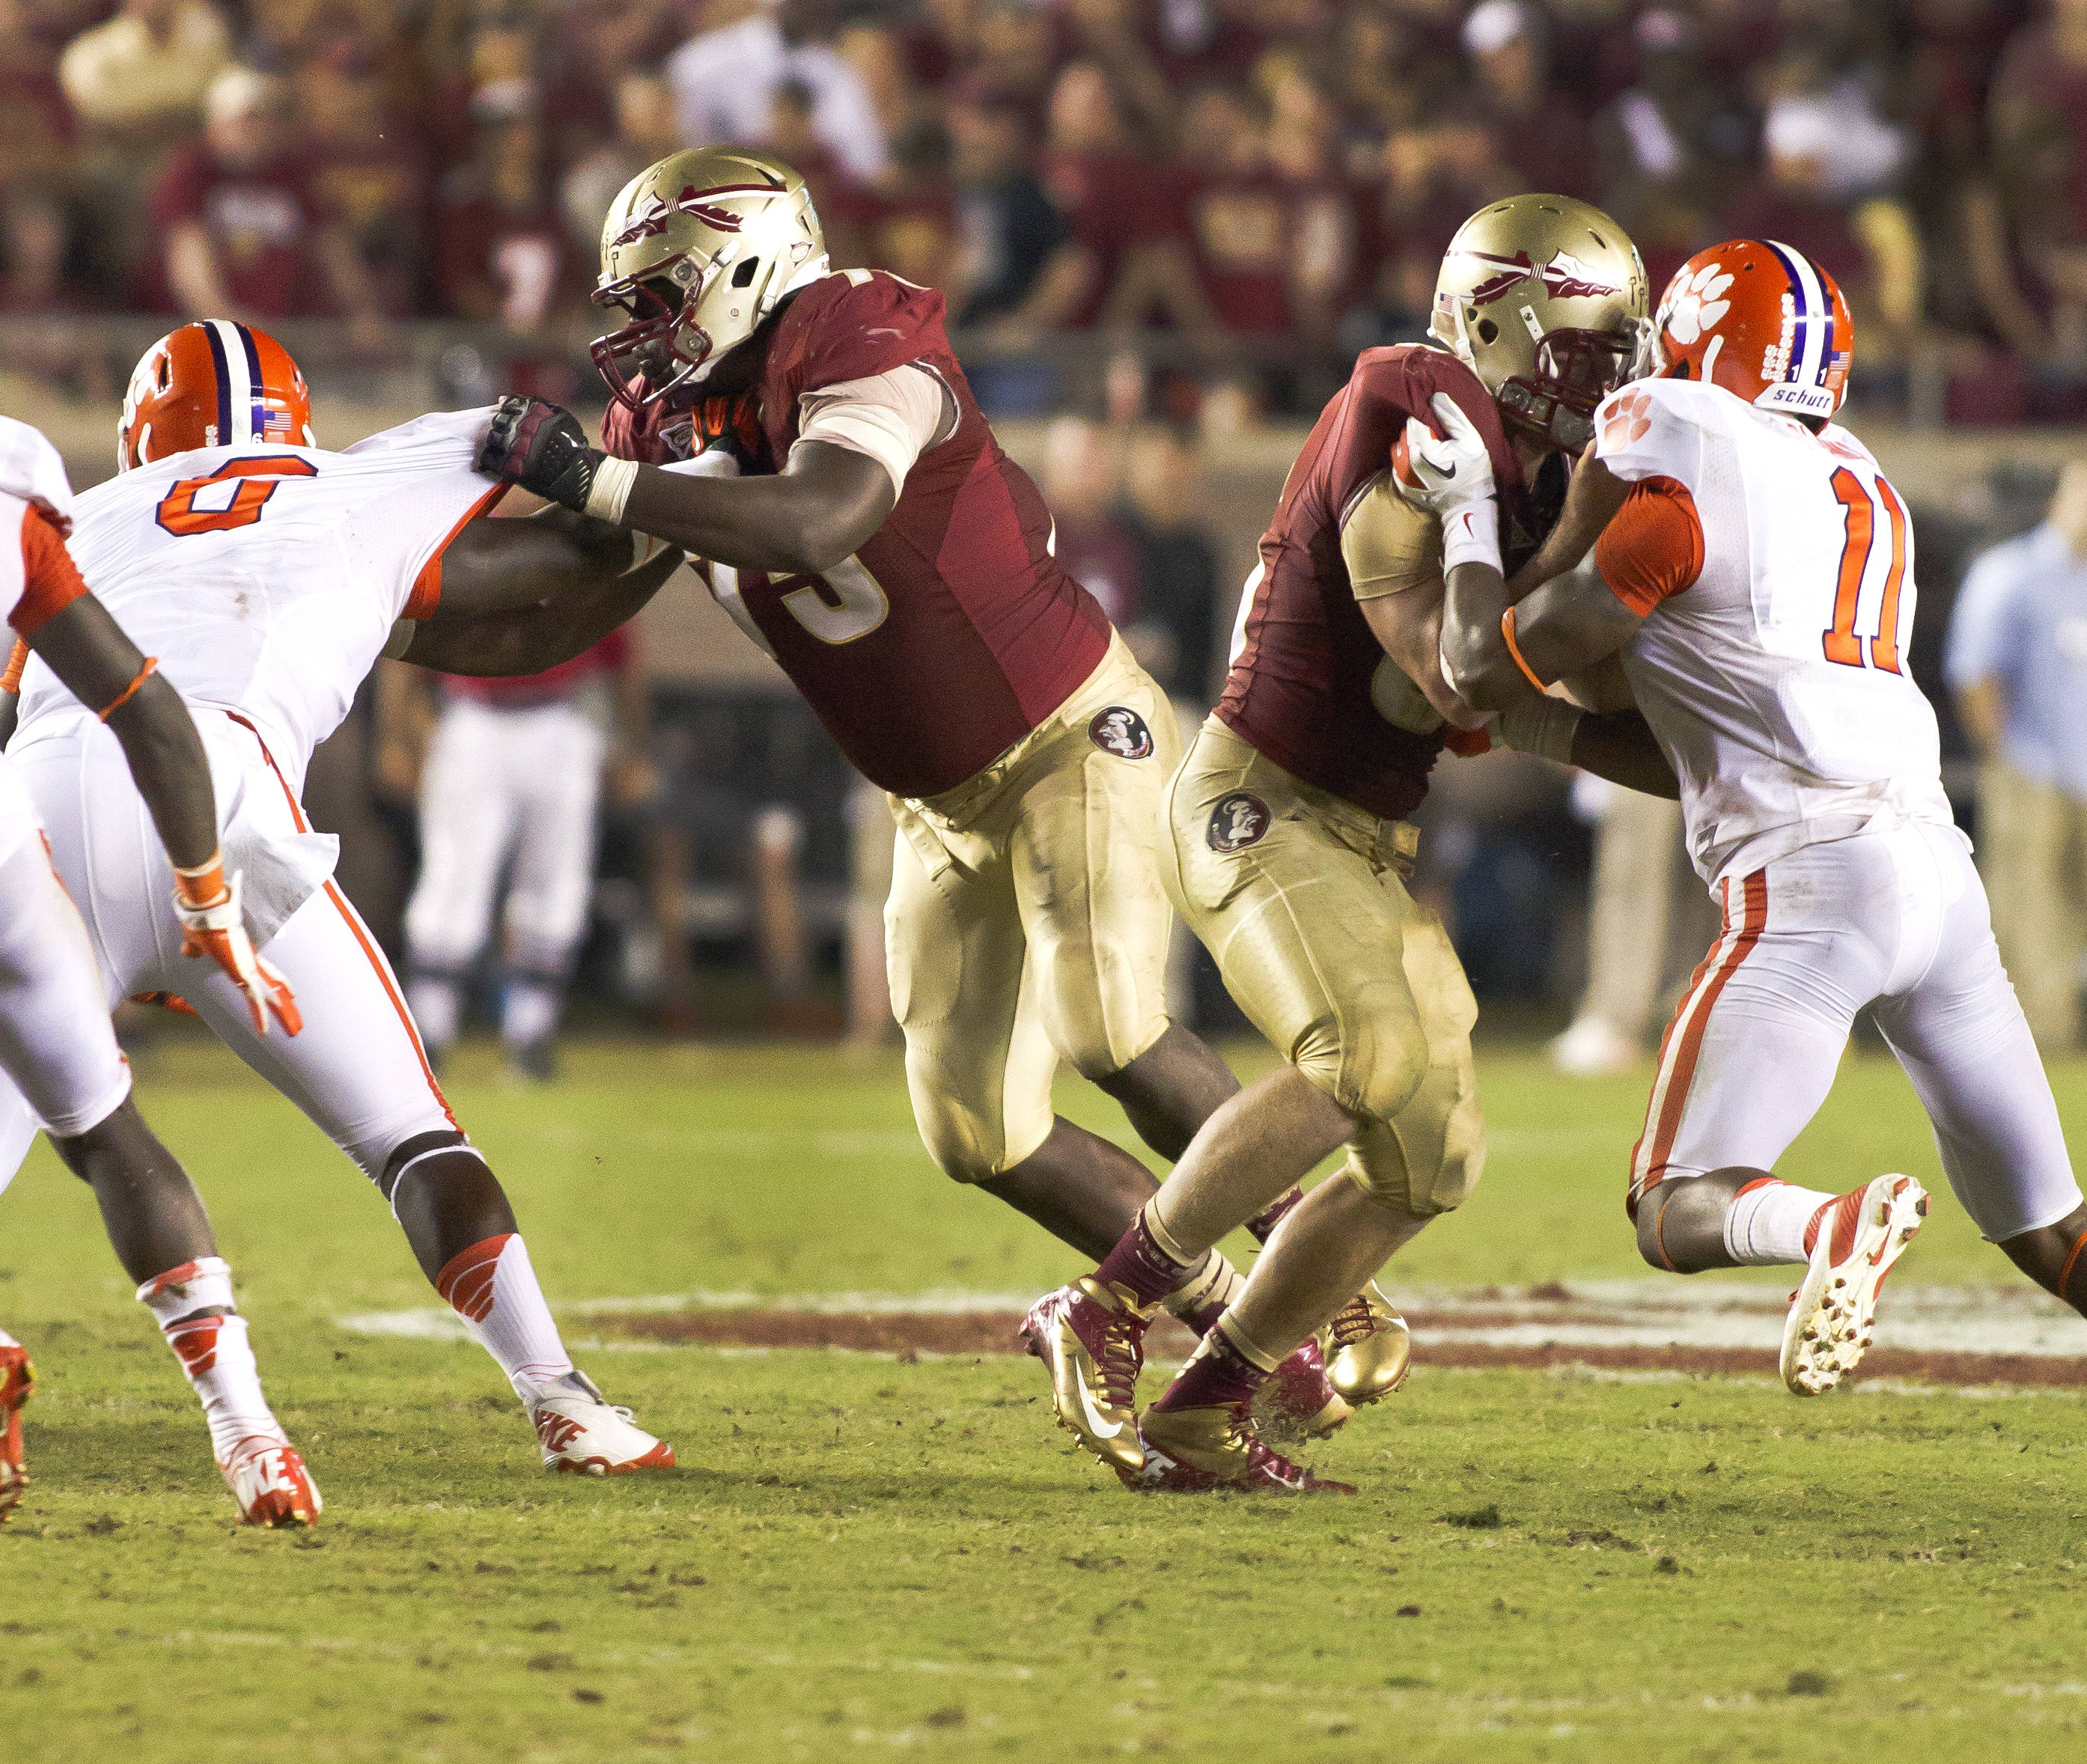 Cameron Erving (7) finishing his block, FSU vs Clemson, 9/22/12 (Photo by Steve Musco)